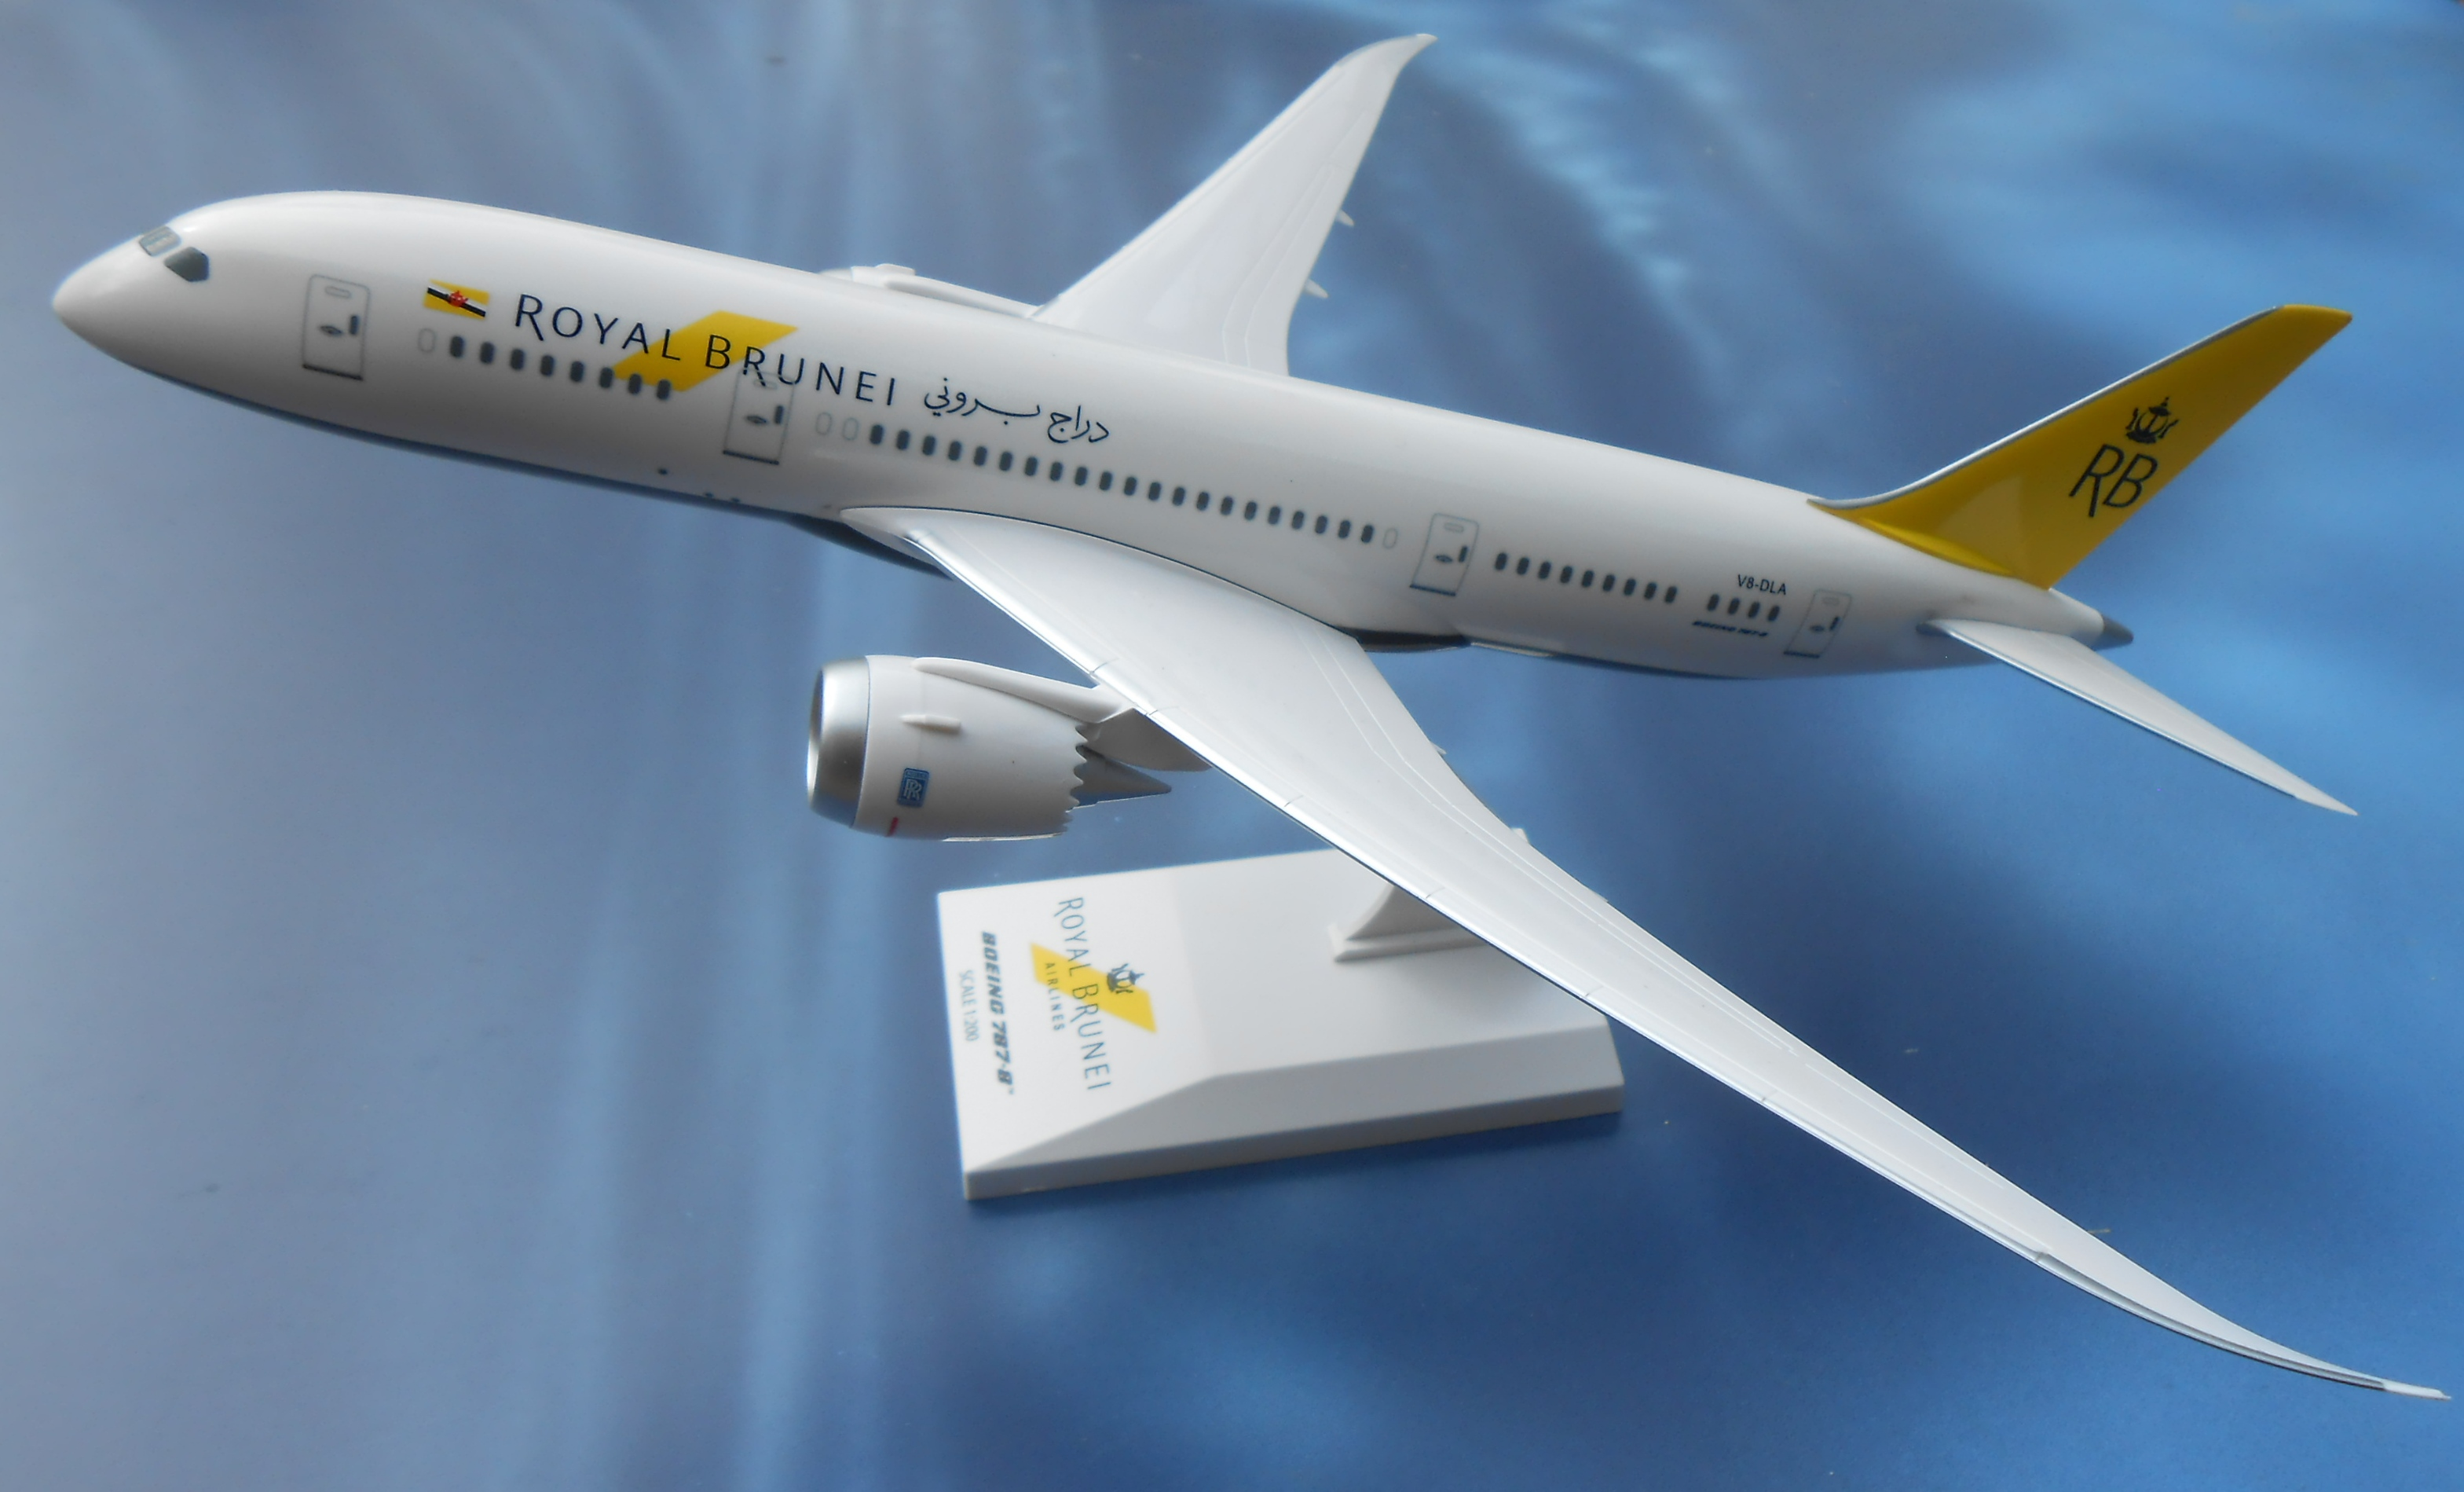 ROYAL BRUNEI AIRLINES BOEING 787-800